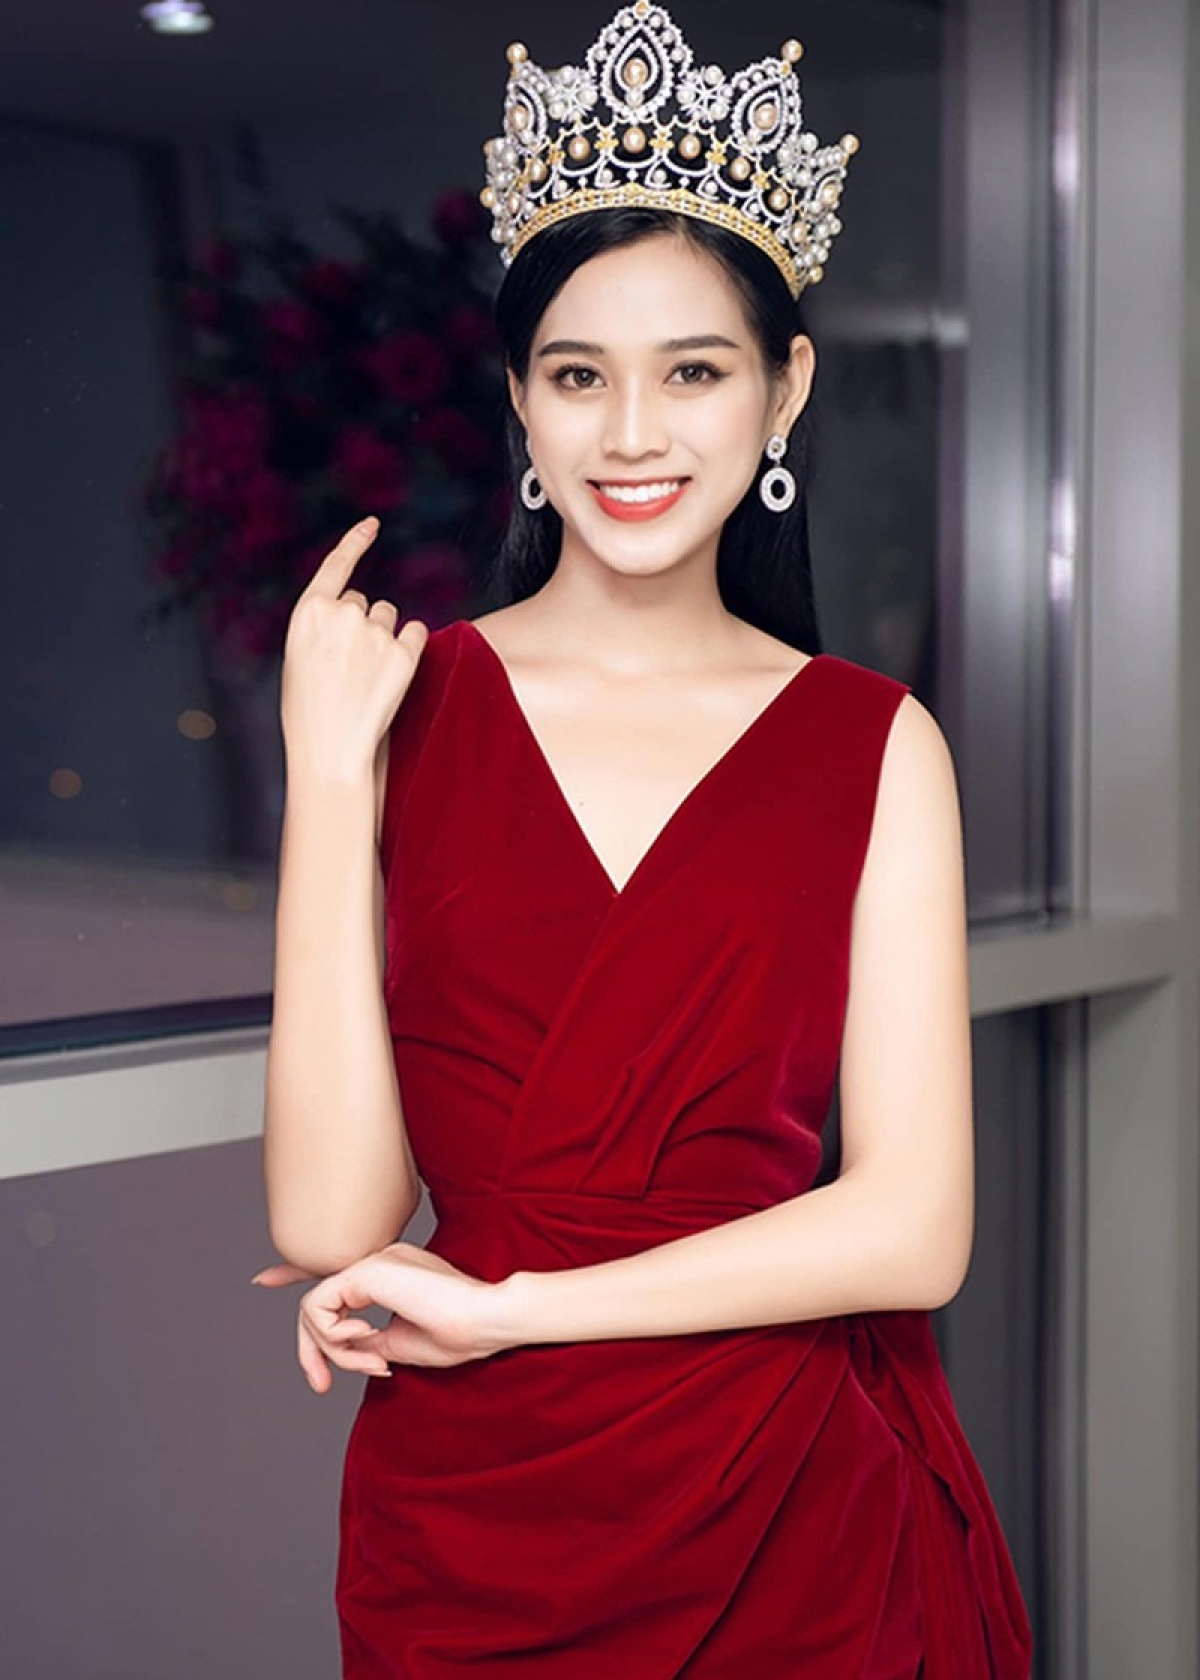 vietnamese beauty queen to compete at miss world 2021 this december